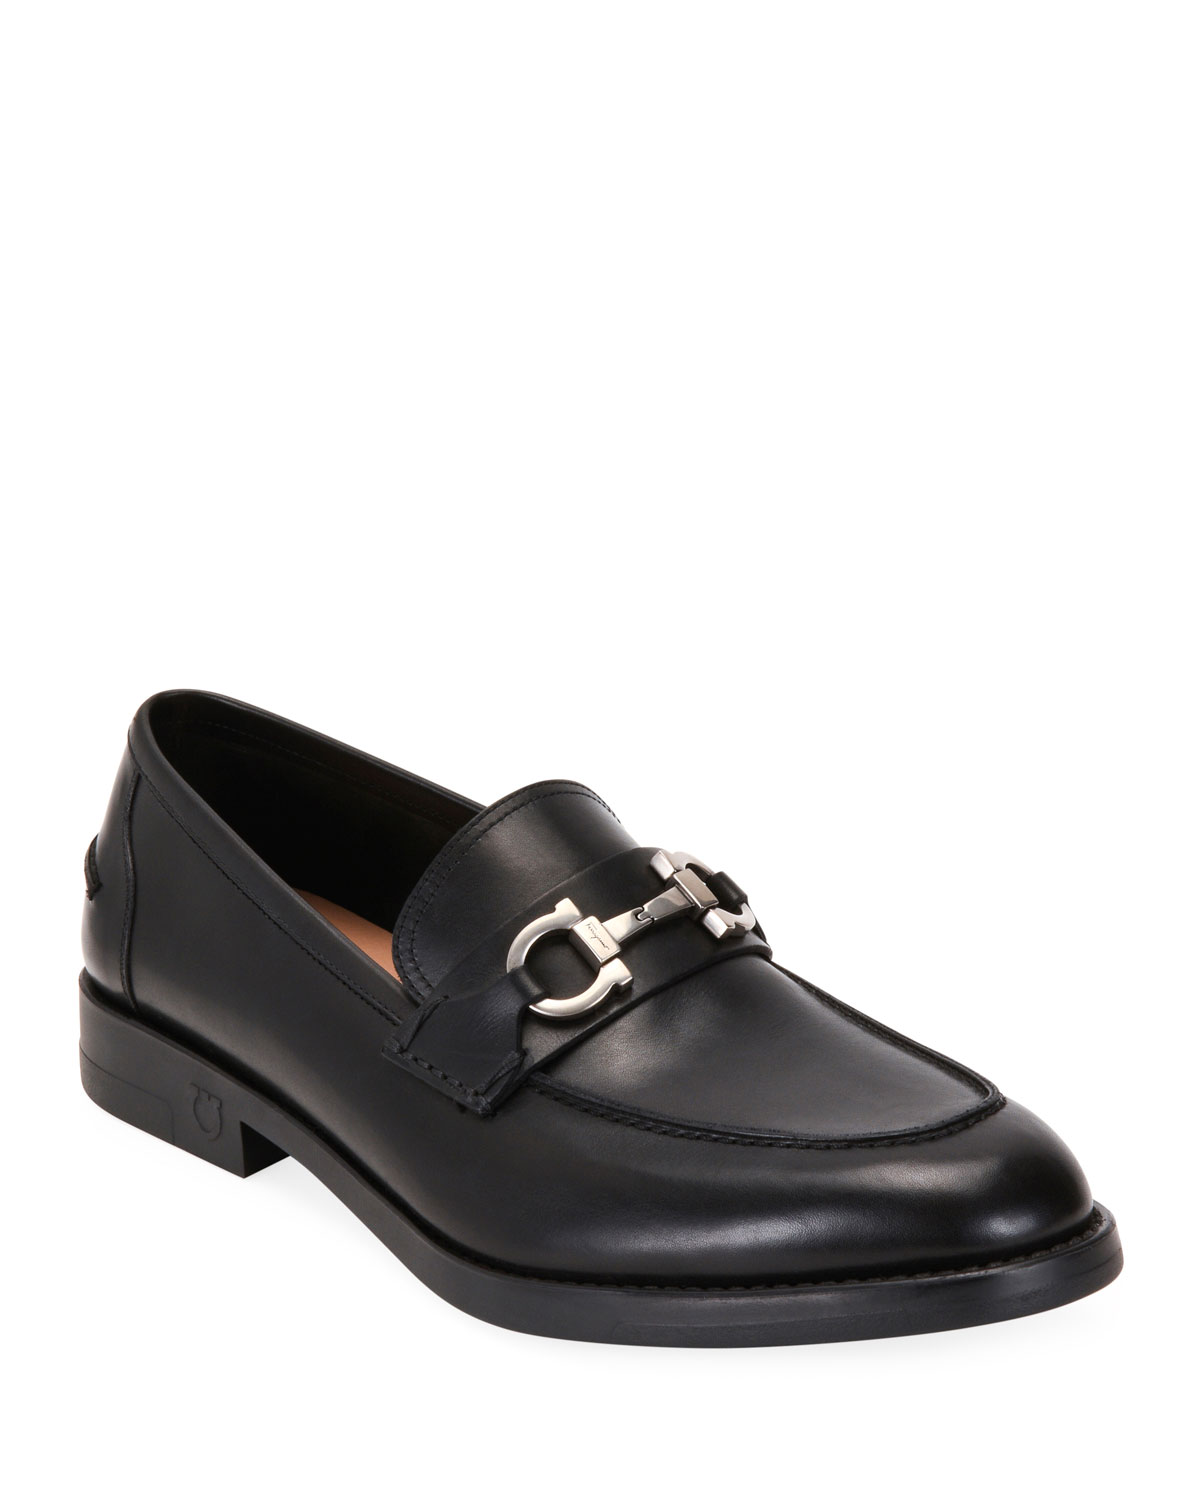 Salvatore Ferragamo Loafers MEN'S ARLIN LEATHER SLIP-ON BIT LOAFERS